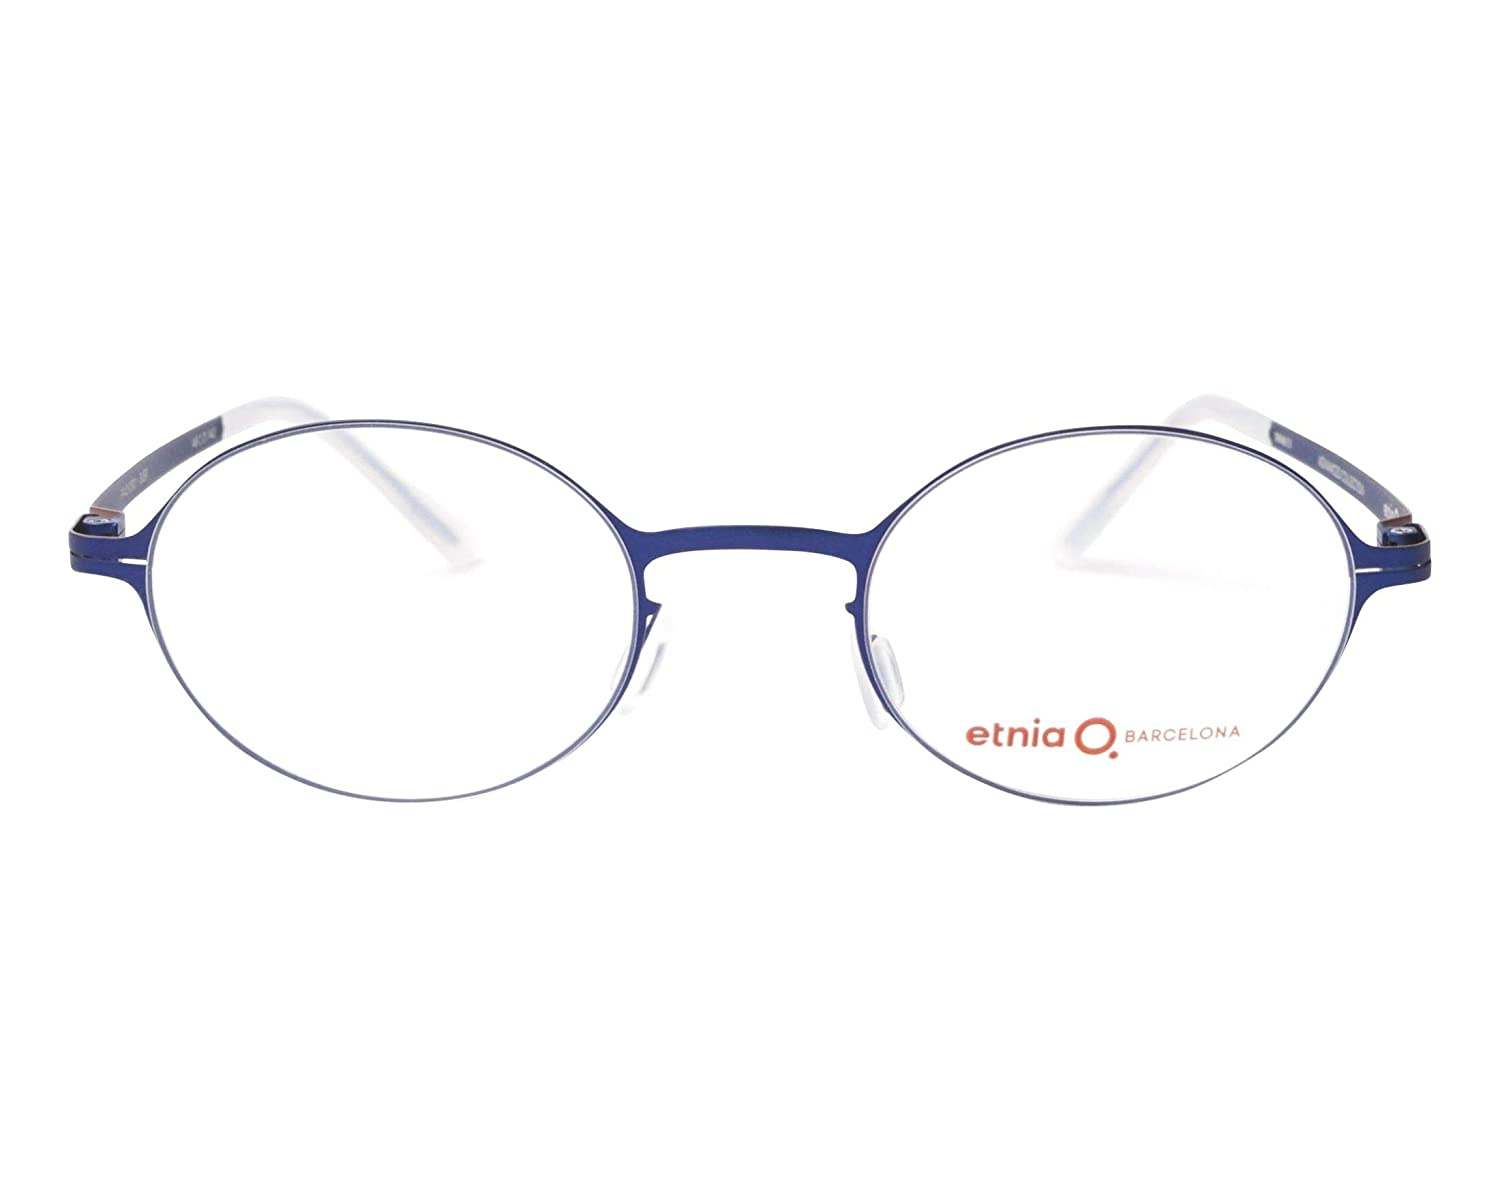 Amazon.com: Etnia Barcelona frame (BRADFORD BLBR) Metal Matt Blue: Clothing